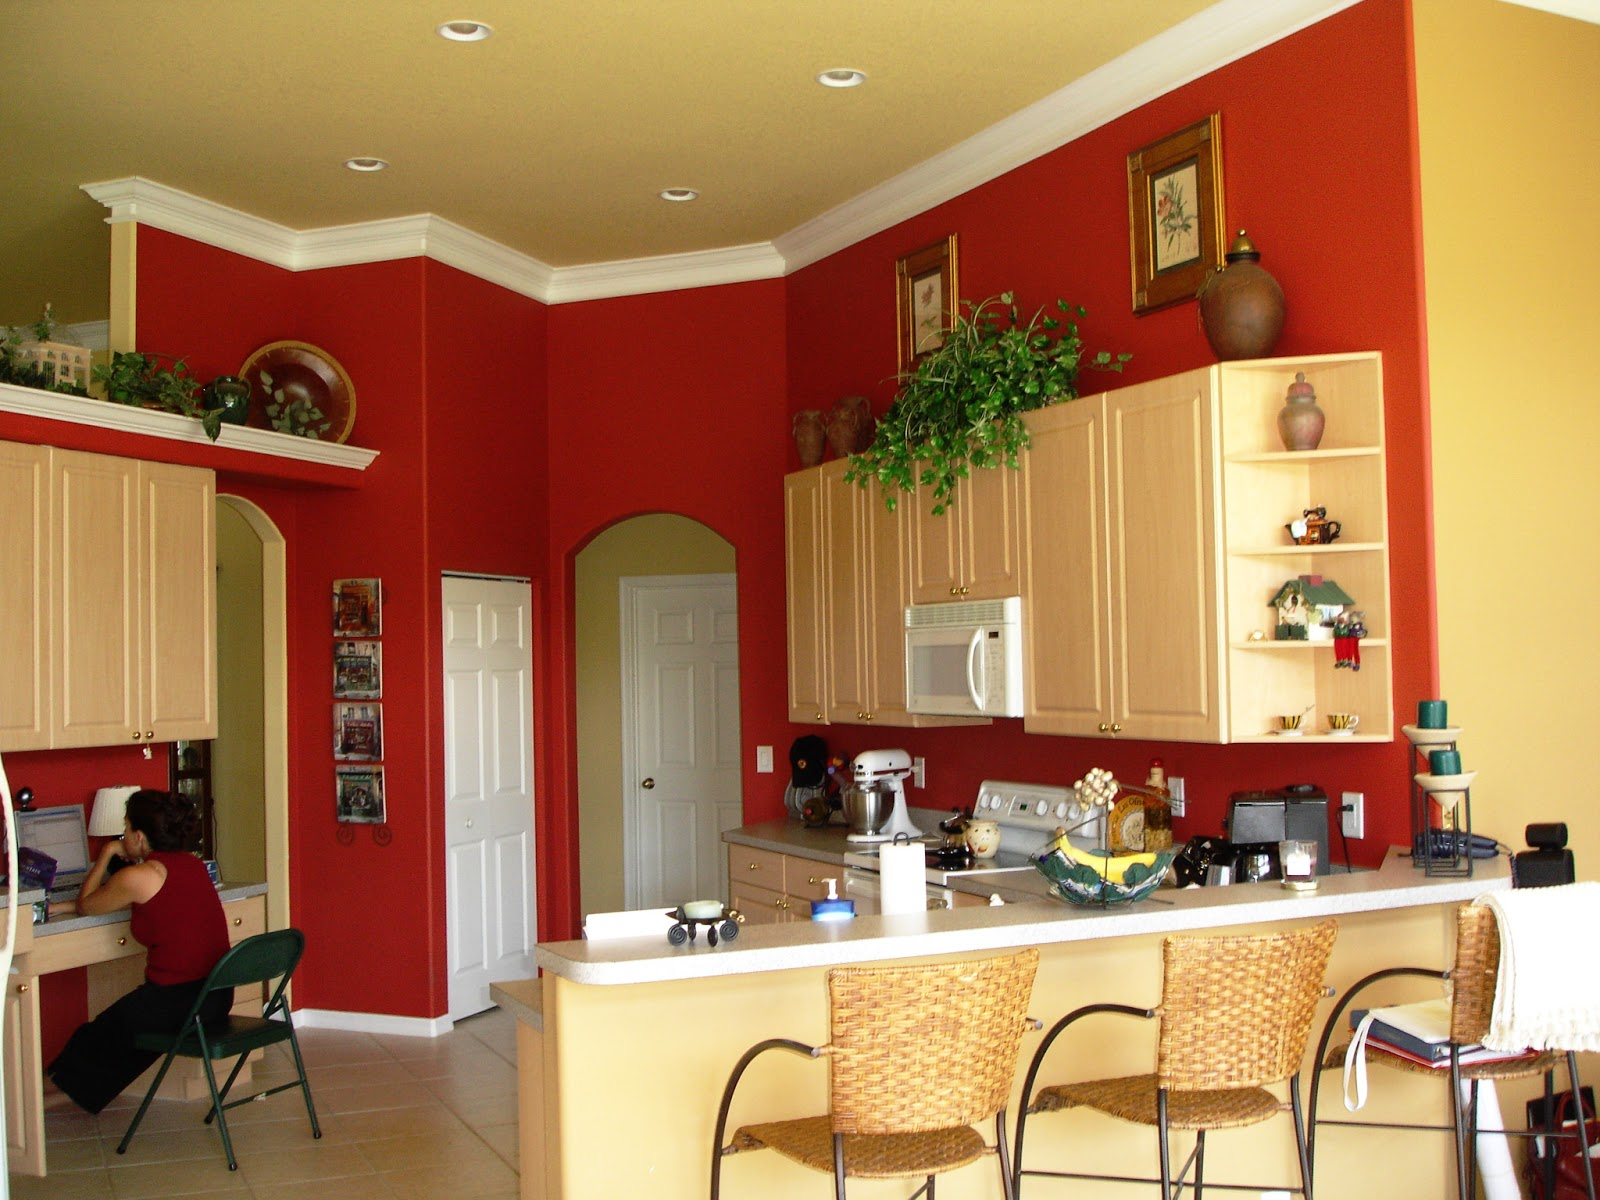 color in restaurants dining rooms and kitchens if you ask me red